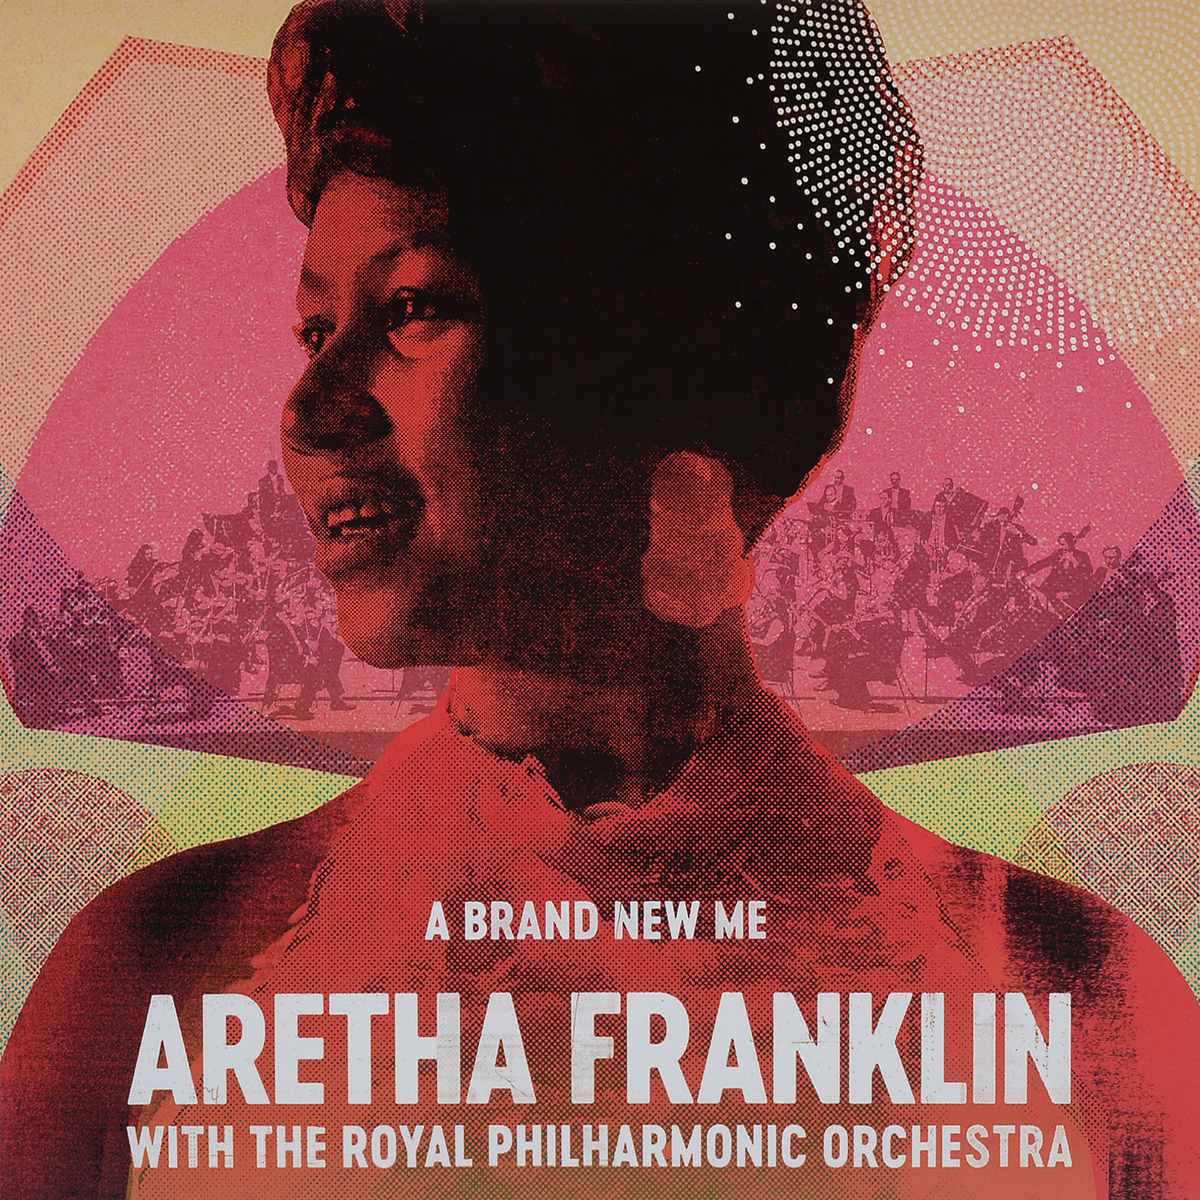 Арета Фрэнклин,The Royal Philharmonic Orchestra Aretha Franklin, Royal Philharmonic Orchestra. The A Brand New Me (LP)